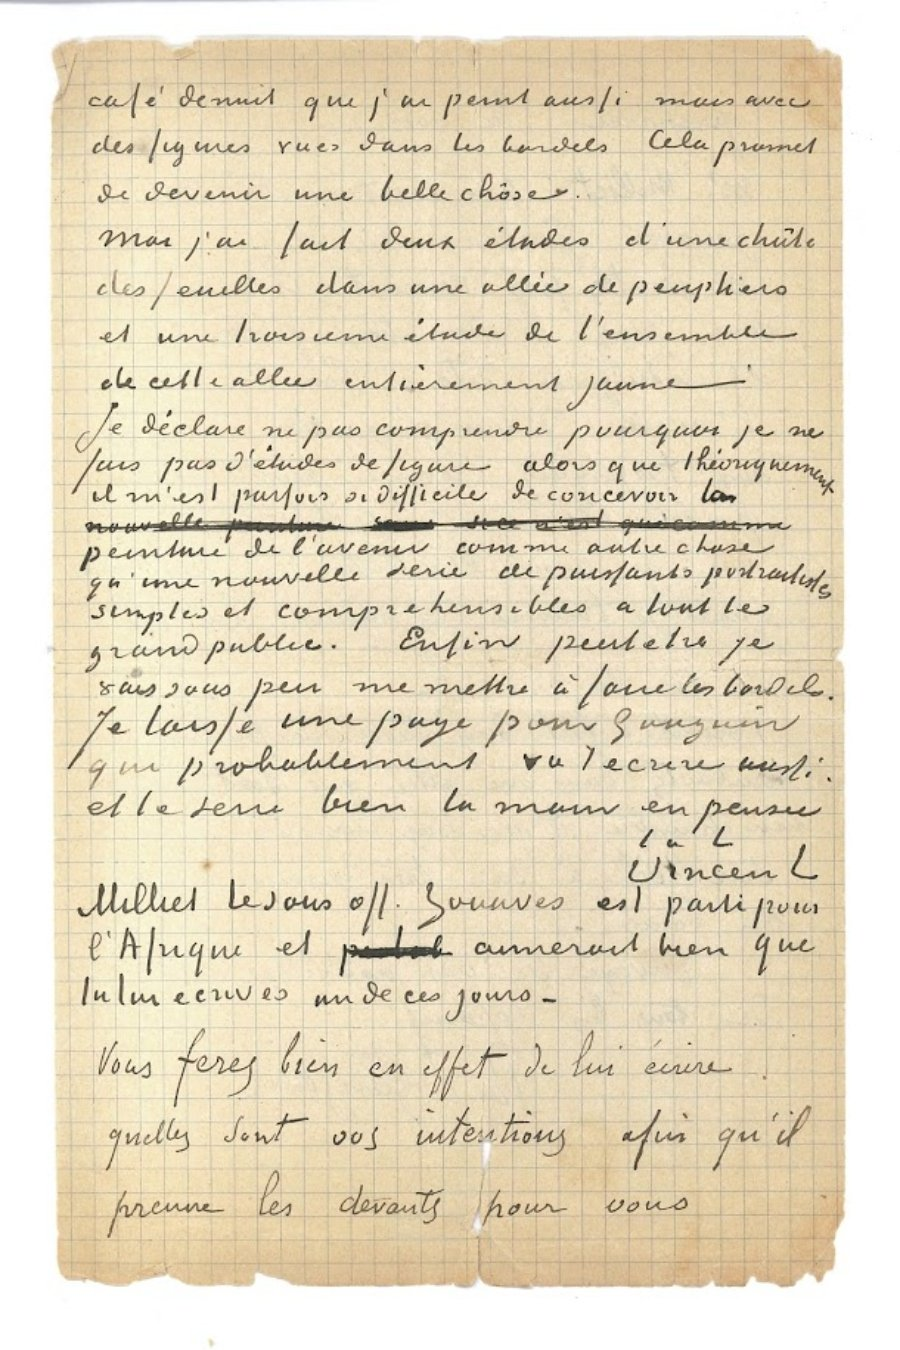 Letter (detail) from Vincent van Gogh and Paul Gauguin to Emile Bernard. Courtesy of the Van Gogh Museum, Amsterdam / Vincent van Gogh Foundation.